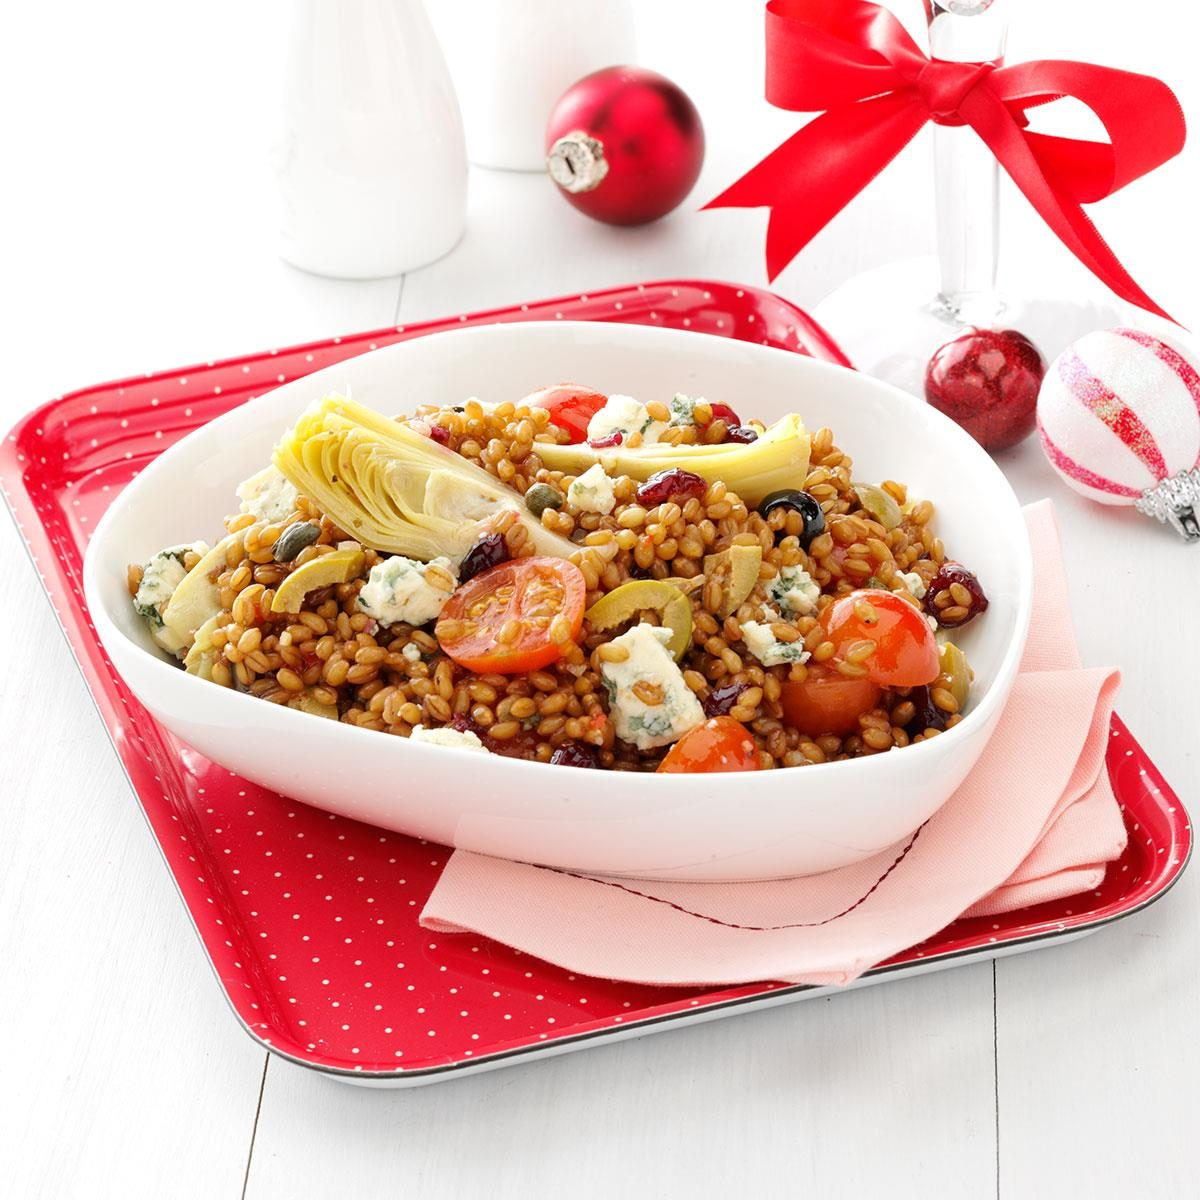 Wheat Berry Salad with Artichokes and Cranberries Recipe ...